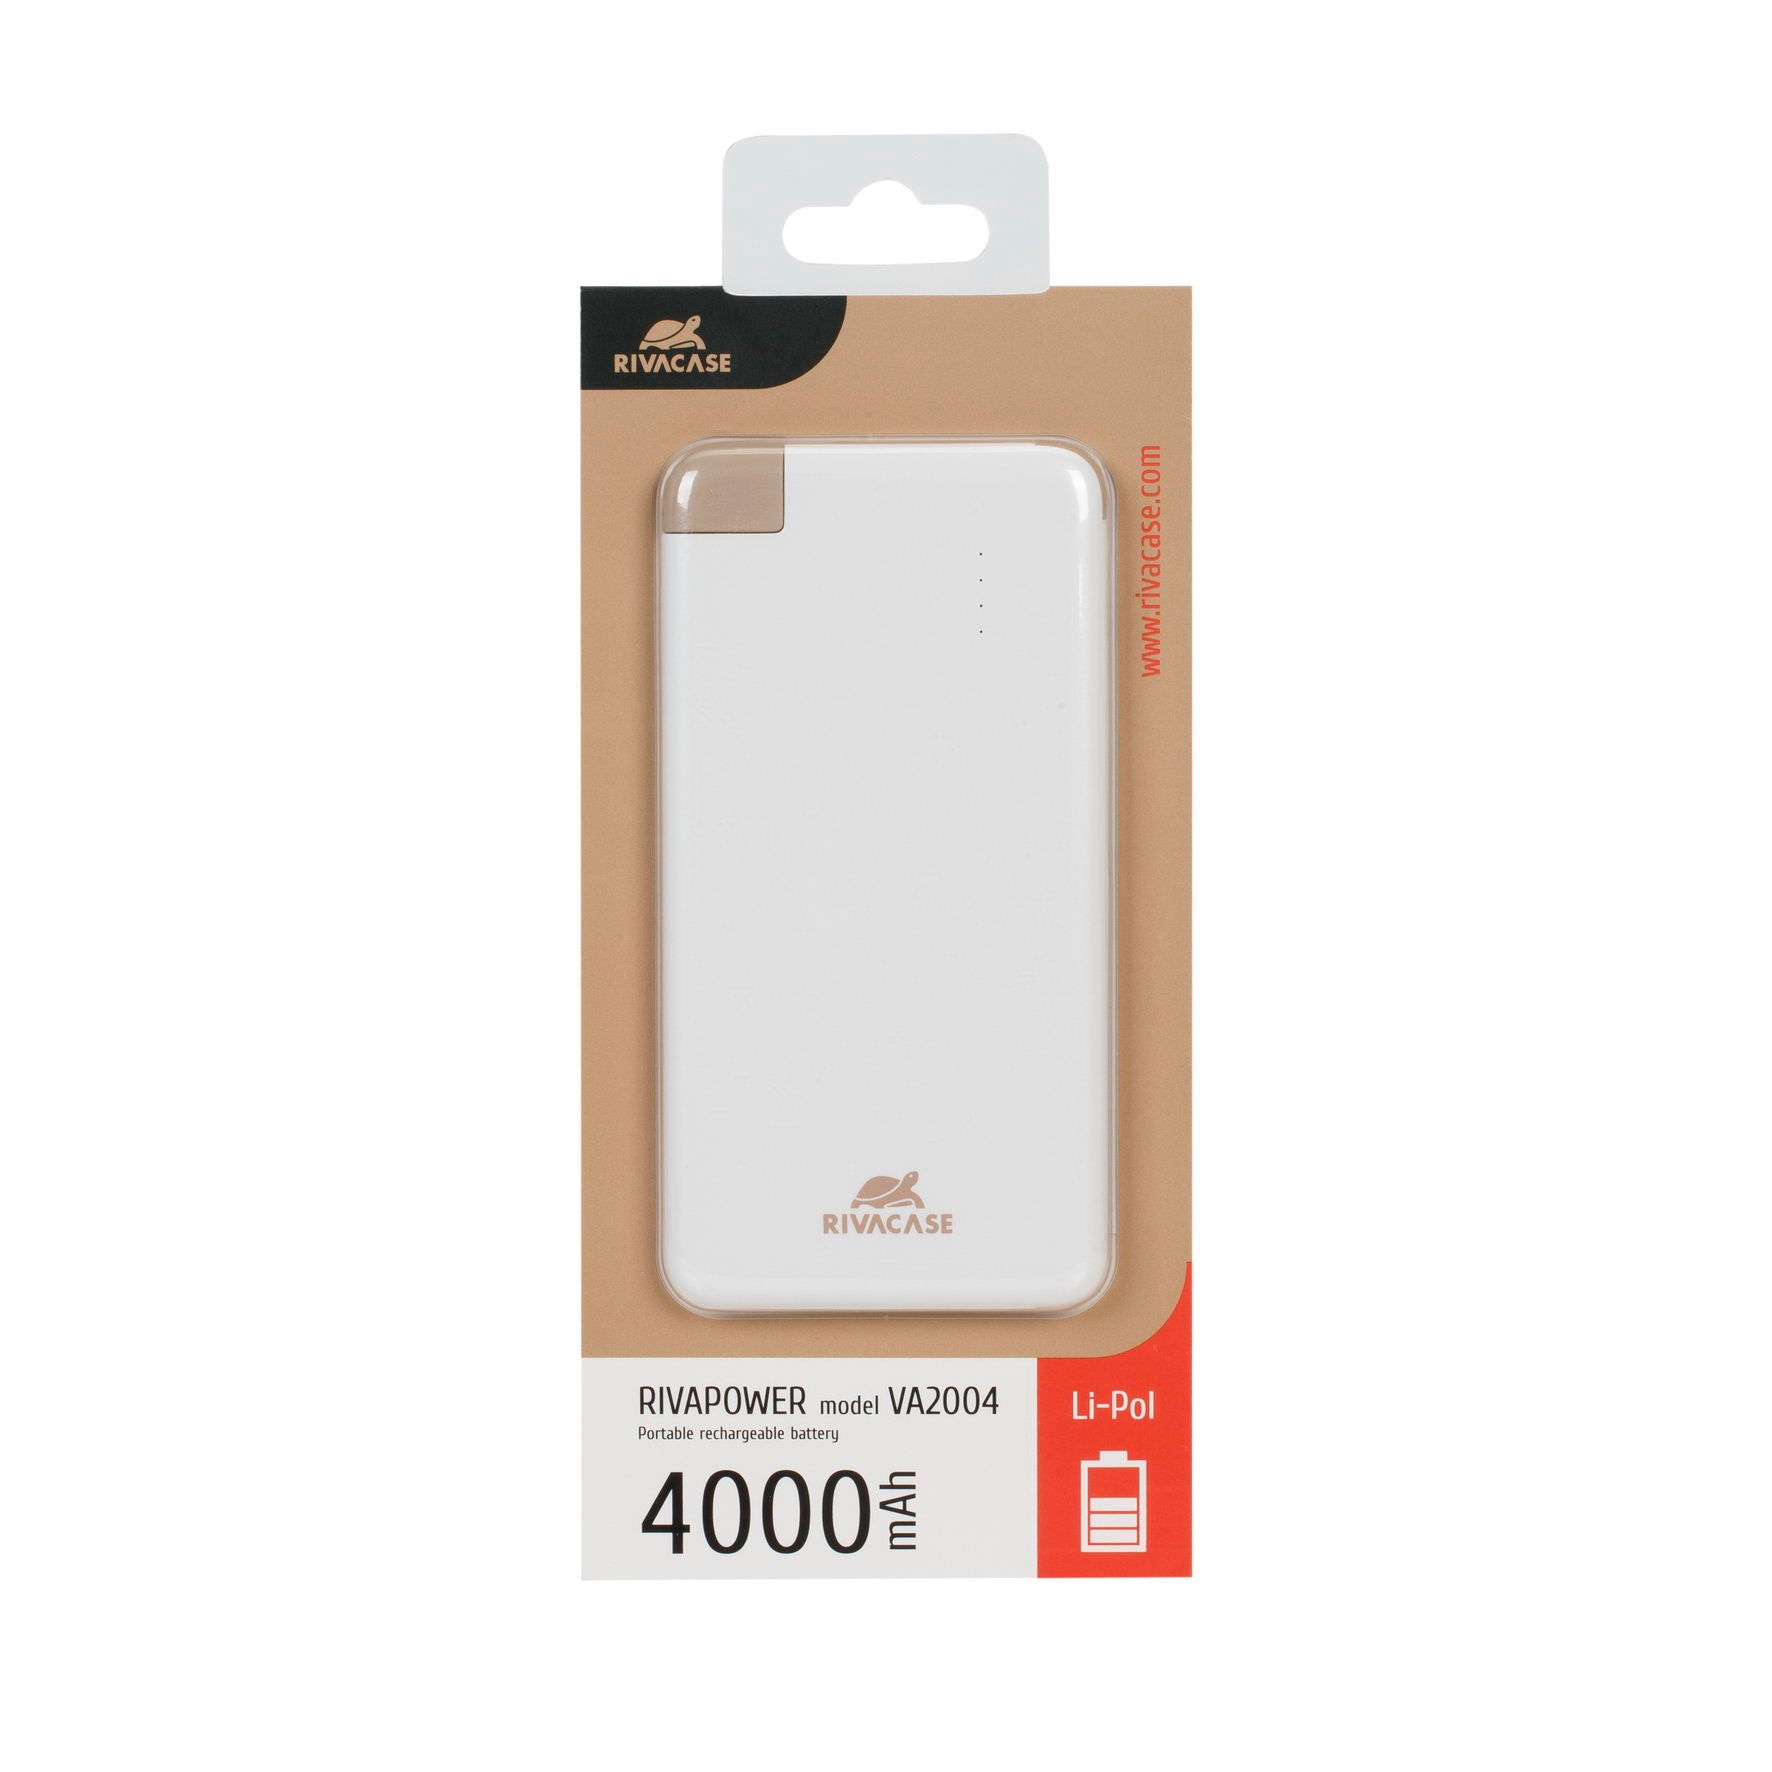 RIVAPOWER VA 2004 (4000mAh) portable rechargeable battery /60 VA2004